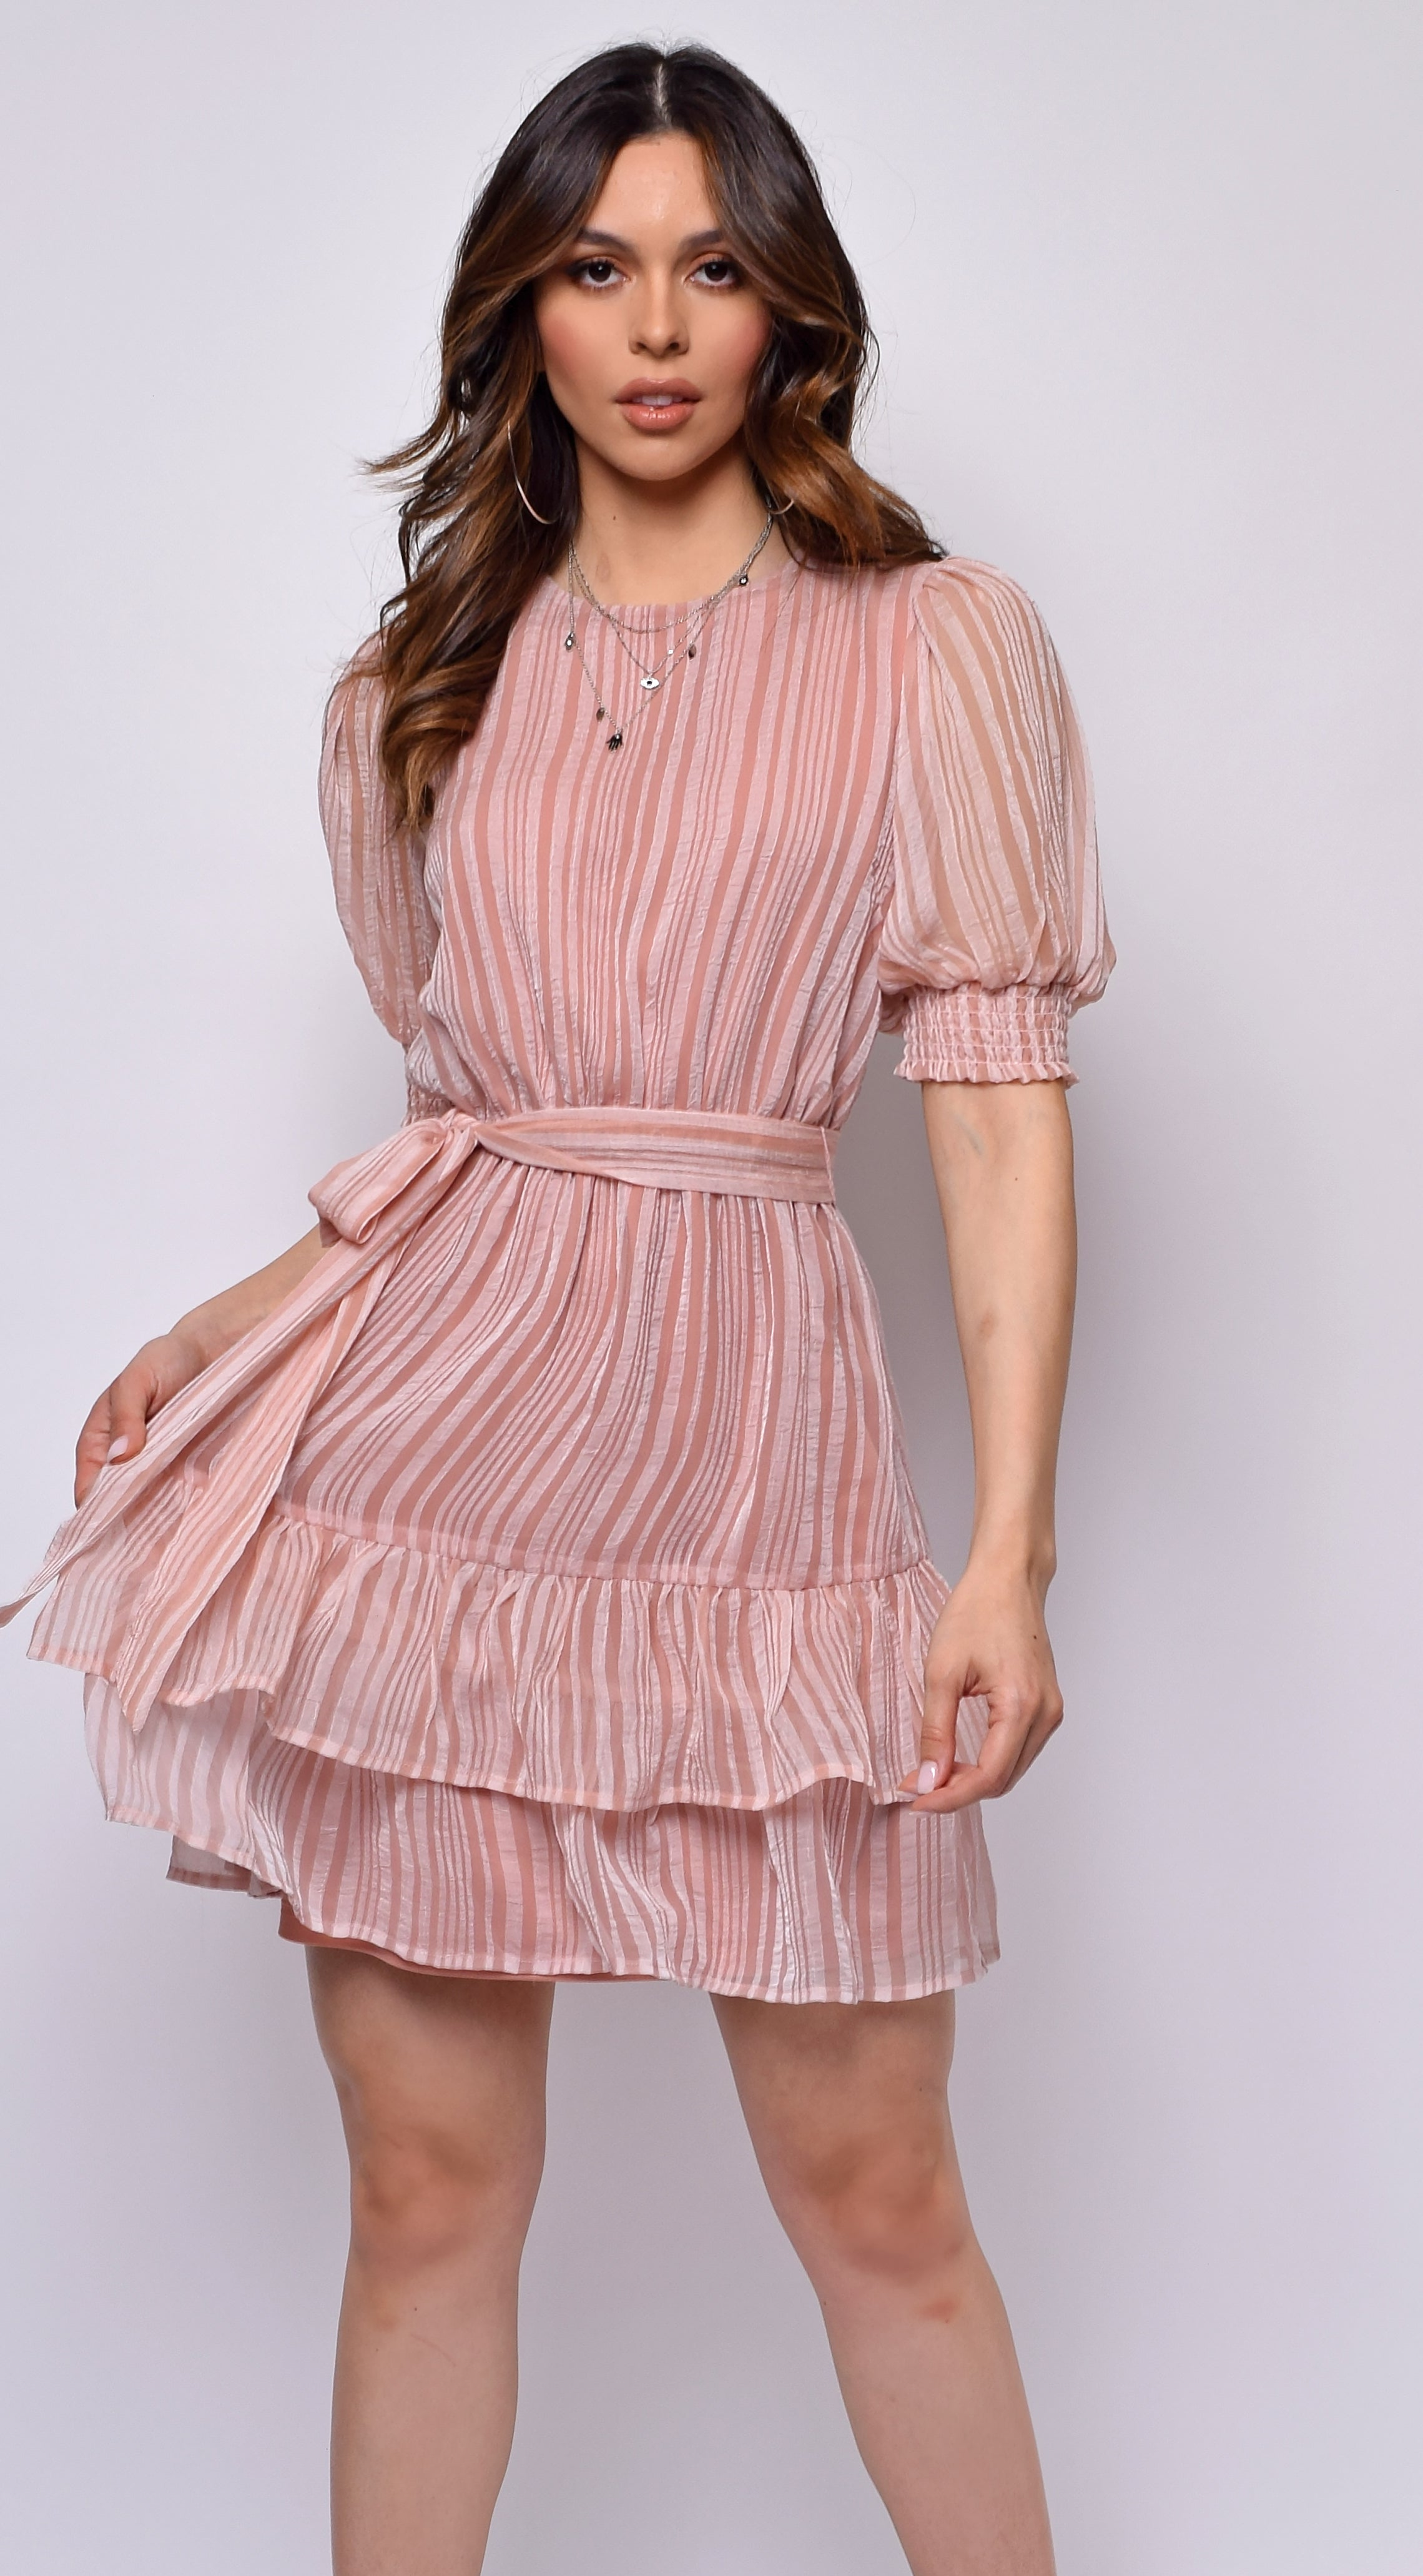 Valentina Mauve Ruffle Dress